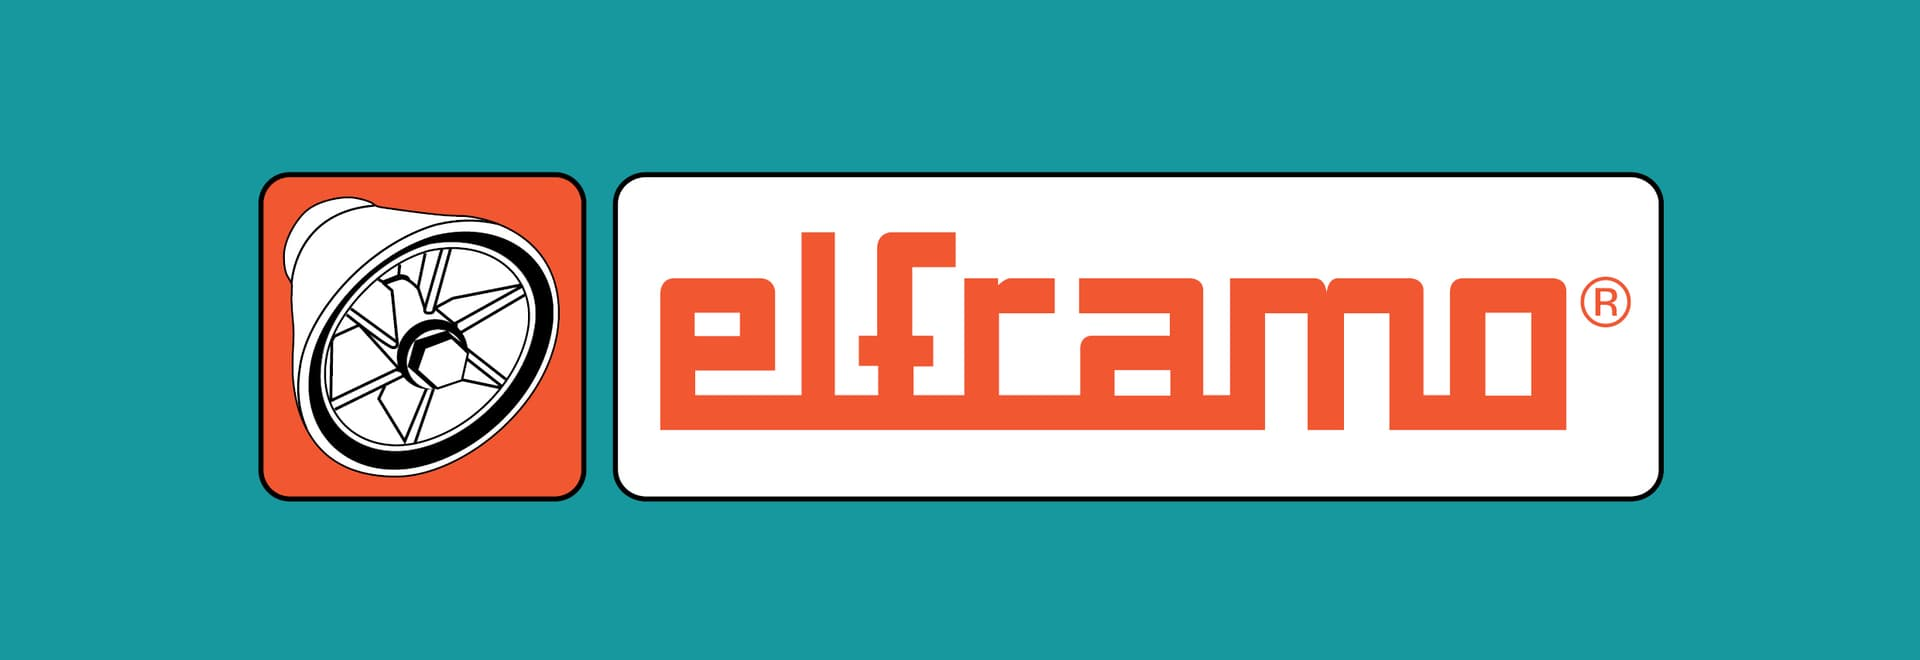 Elframo - the new colour of the logo